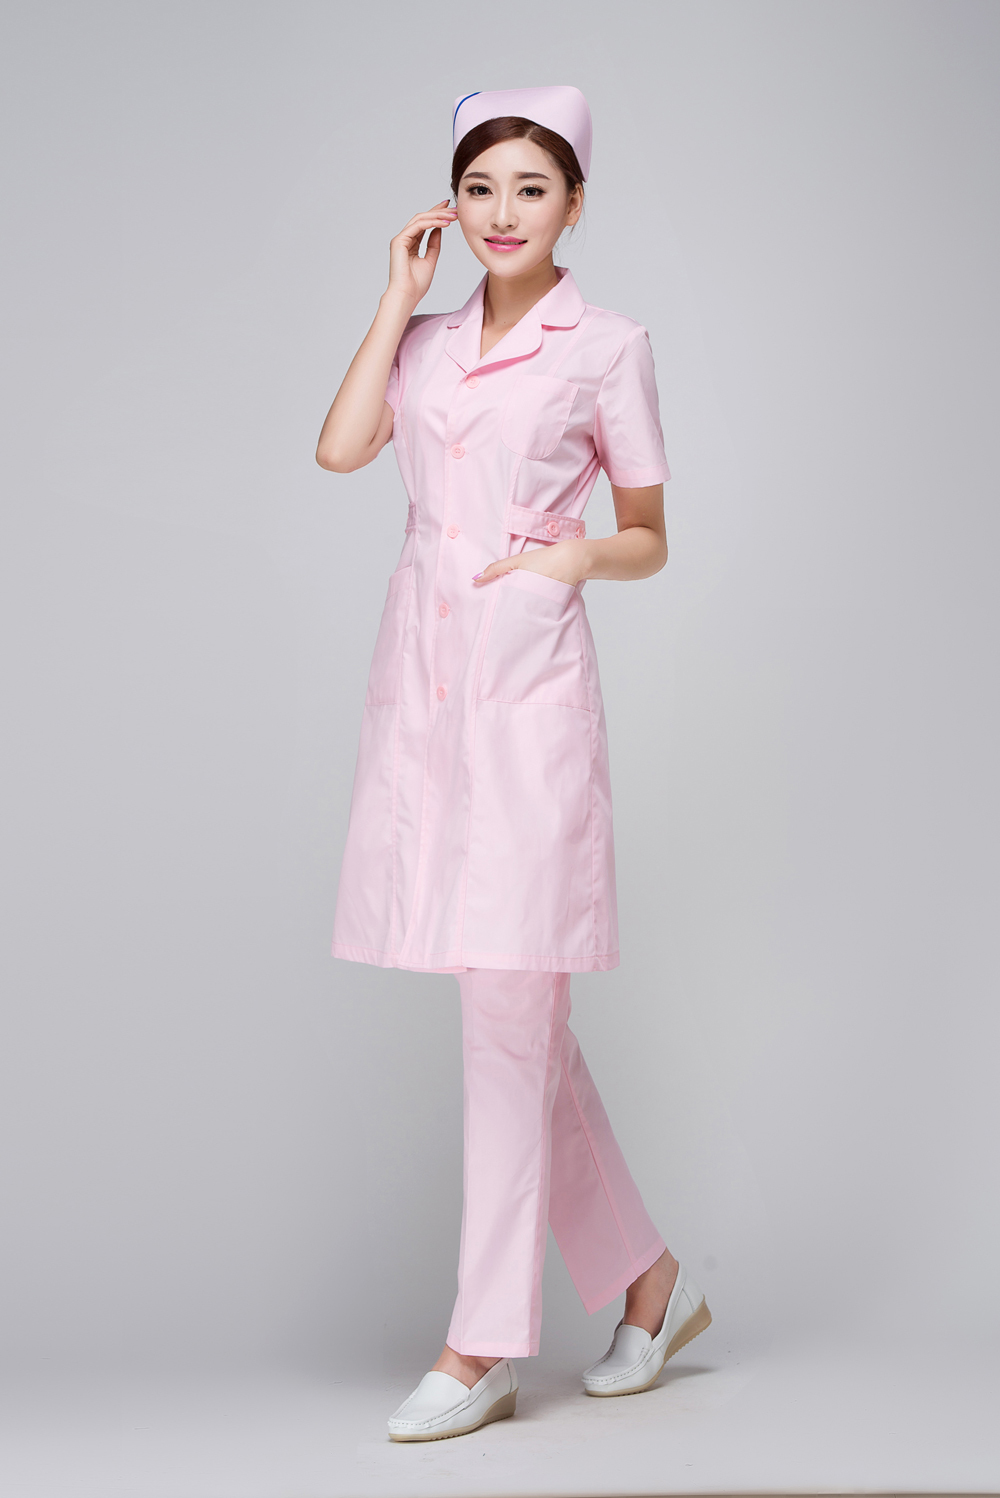 Generous Nursing Gowns For Hospital Gallery - Images for wedding ...